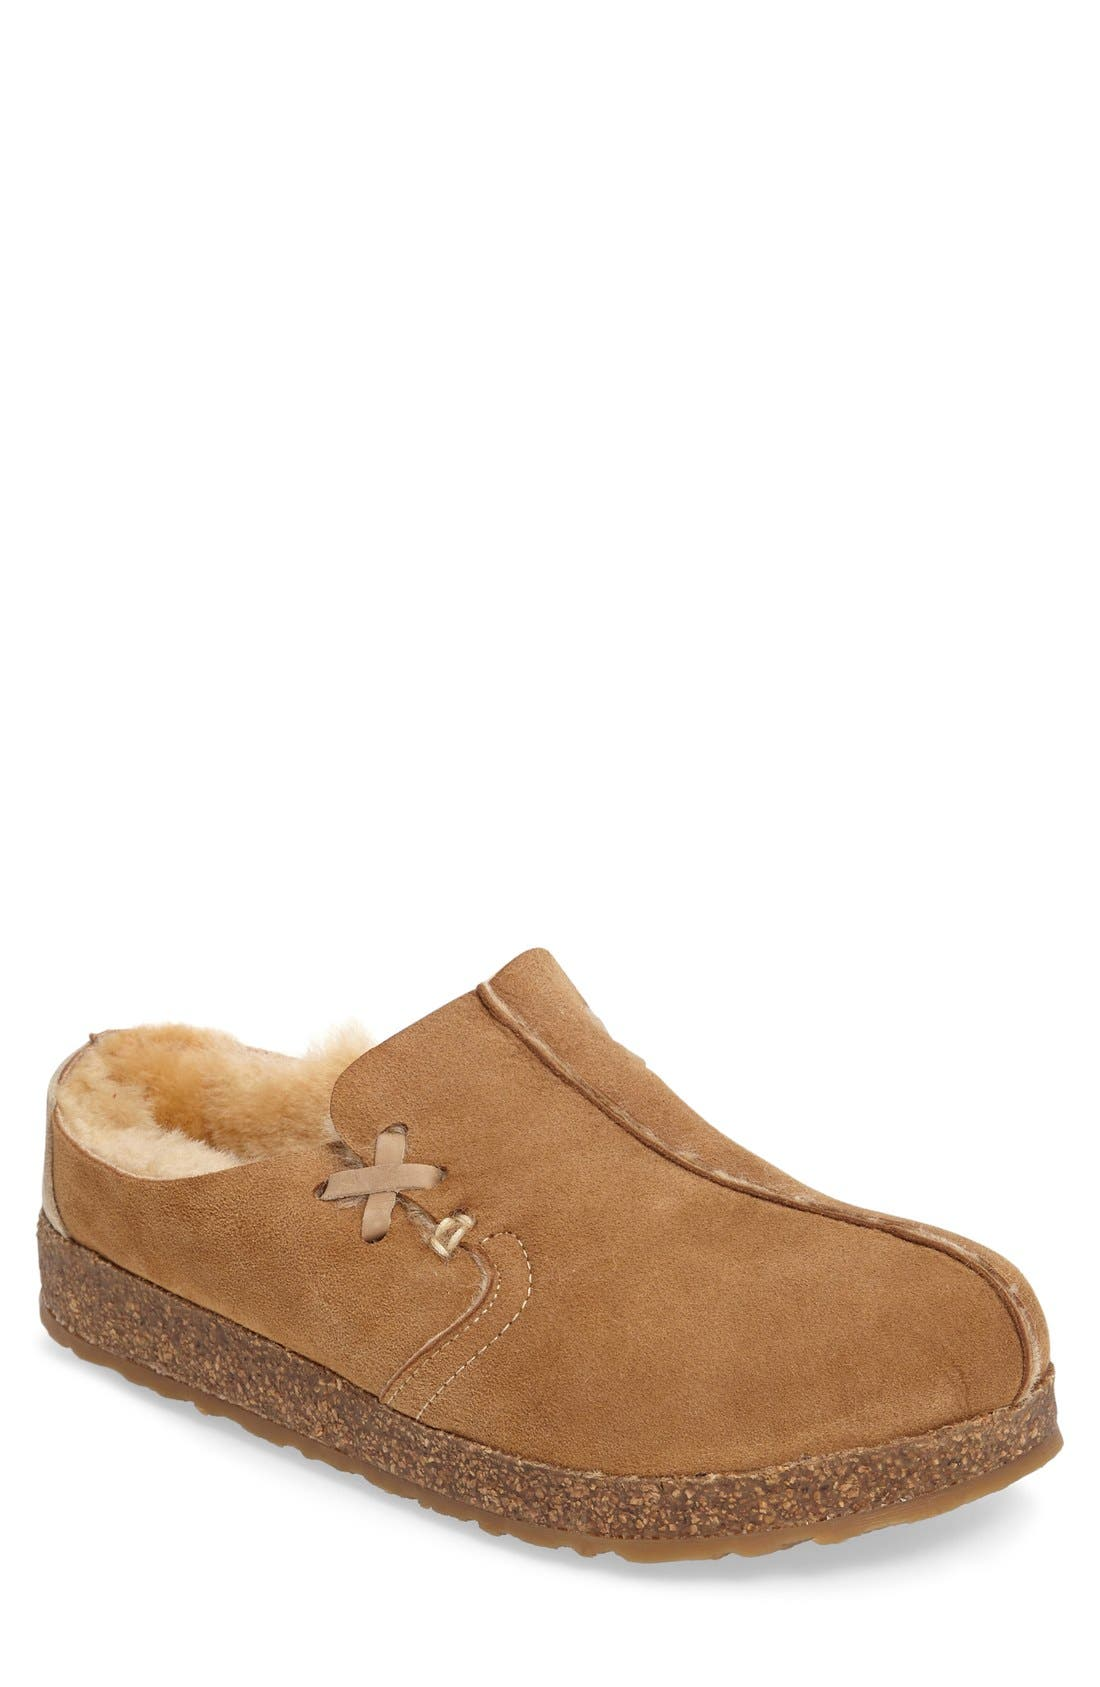 Main Image - Haflinger Saskatchewan Slipper (Women)